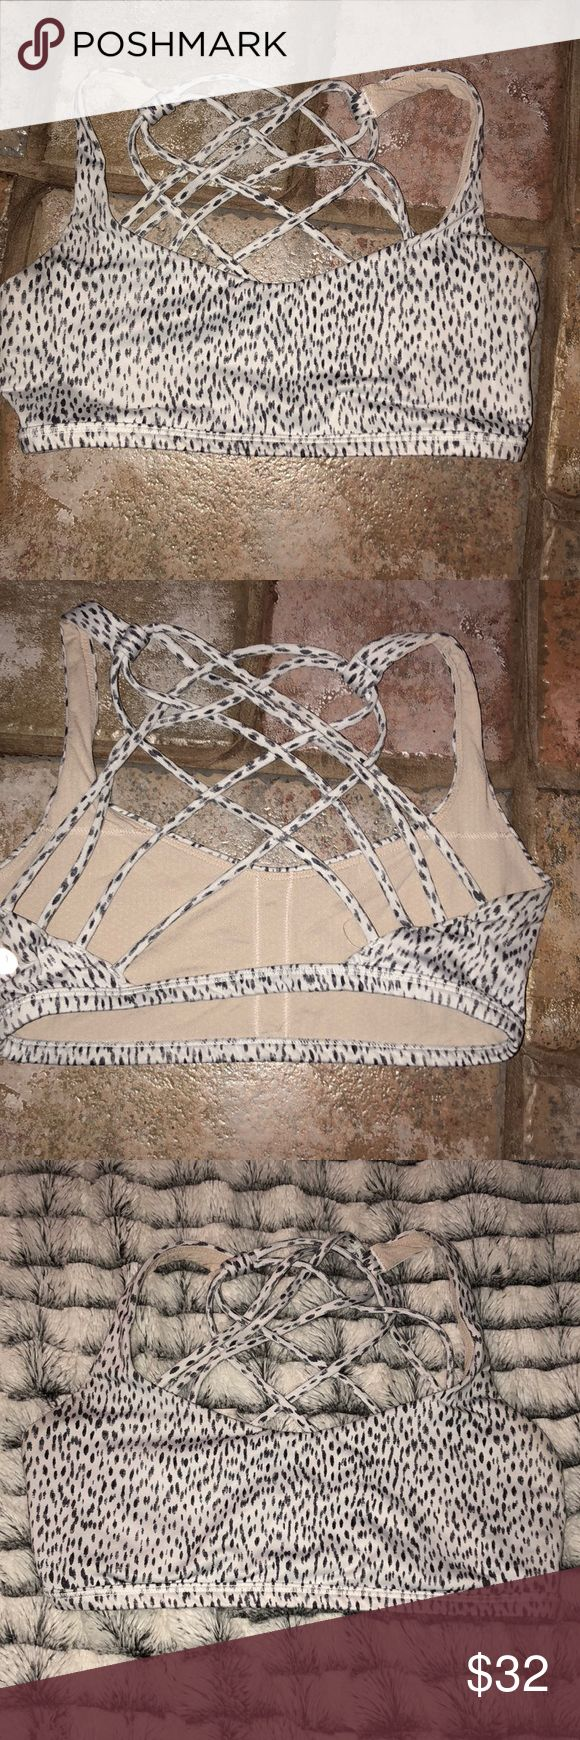 Lululemon Free To Be Wild Sports Bra Lululemon Sports Bra Animal print Strappy back  No bra pads, but you can get them for free from your local store! Great condition lululemon athletica Intimates & Sleepwear Bras